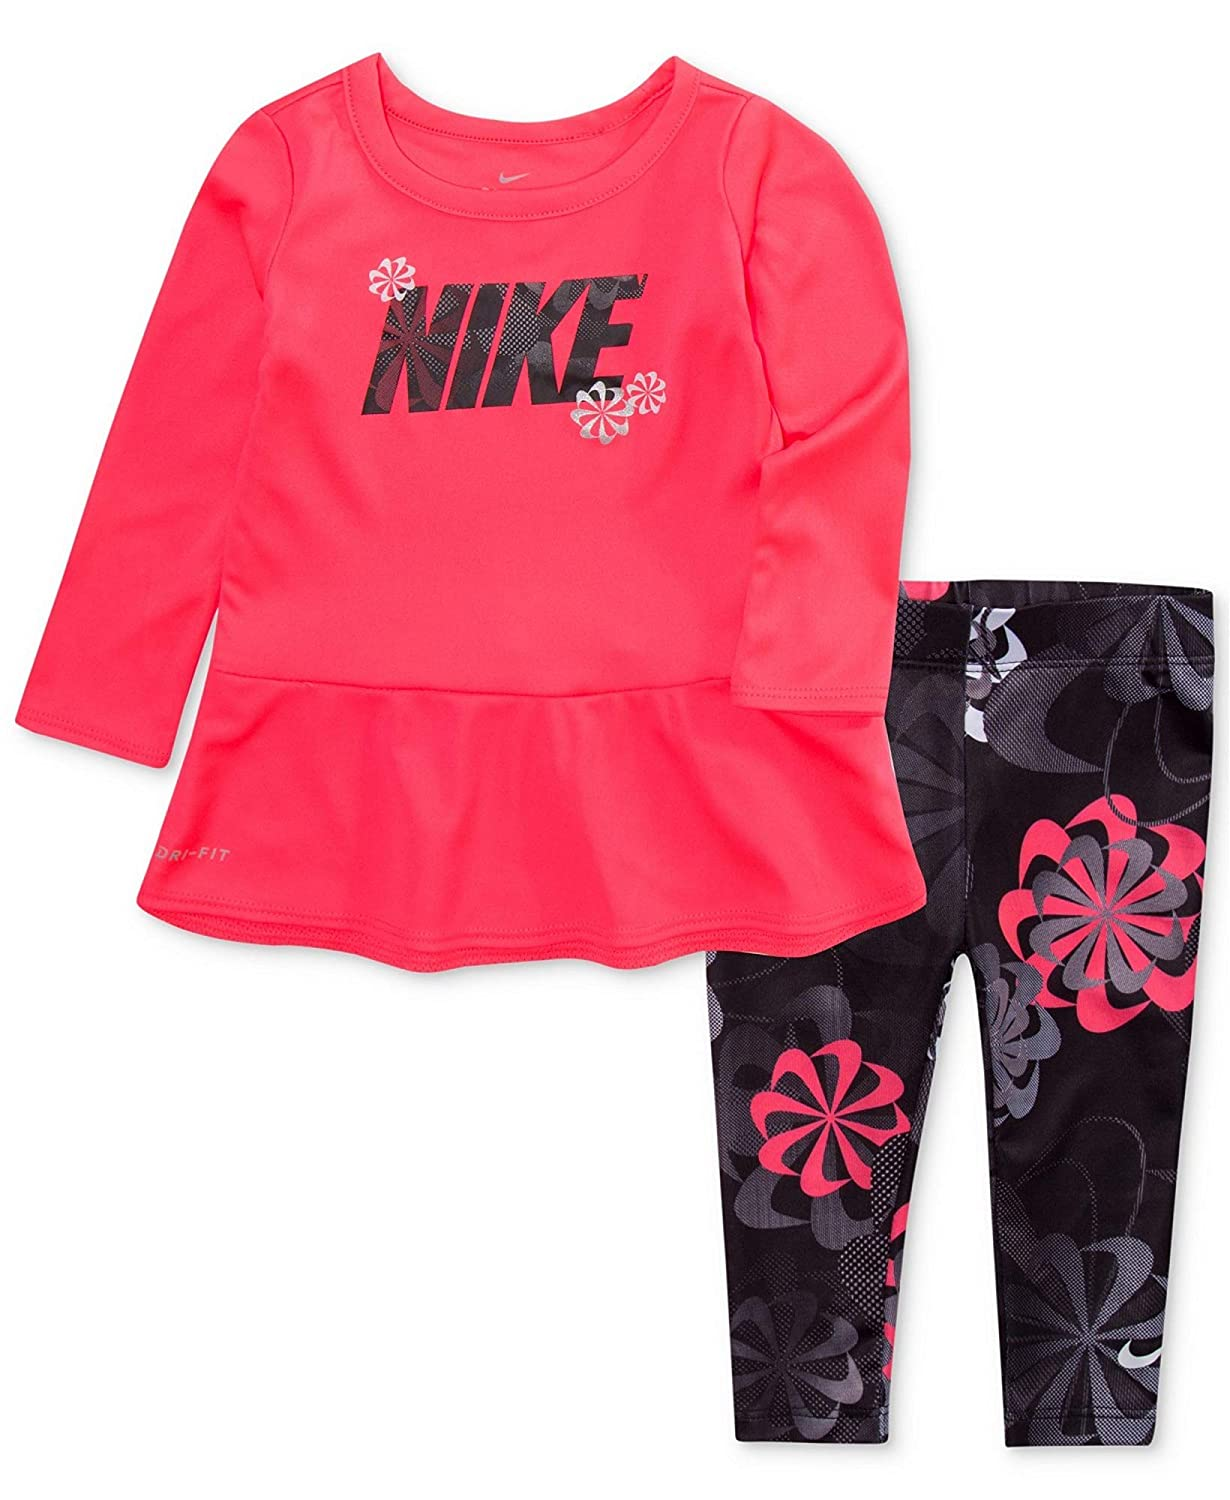 e29325ed5a82 Amazon.com  Nike Baby Toddler Girls 2-Pc. Peplum Top   Leggings Set ...